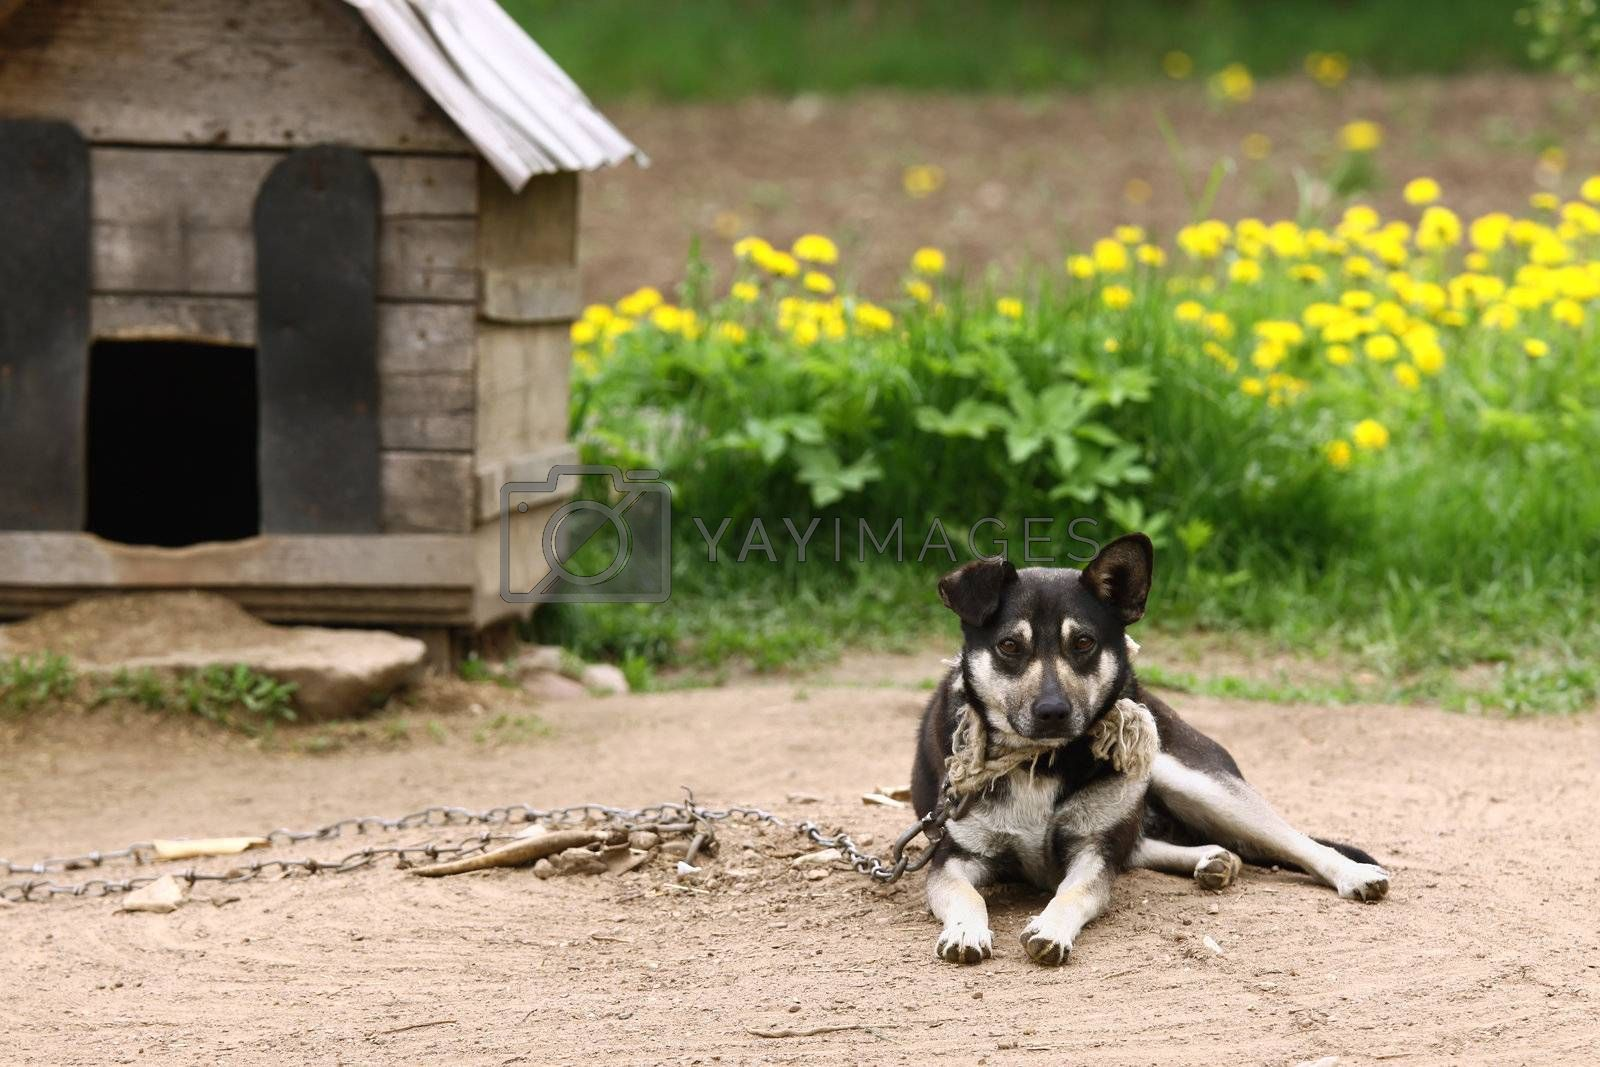 Dog sitting beside kennel in very poor rural environment